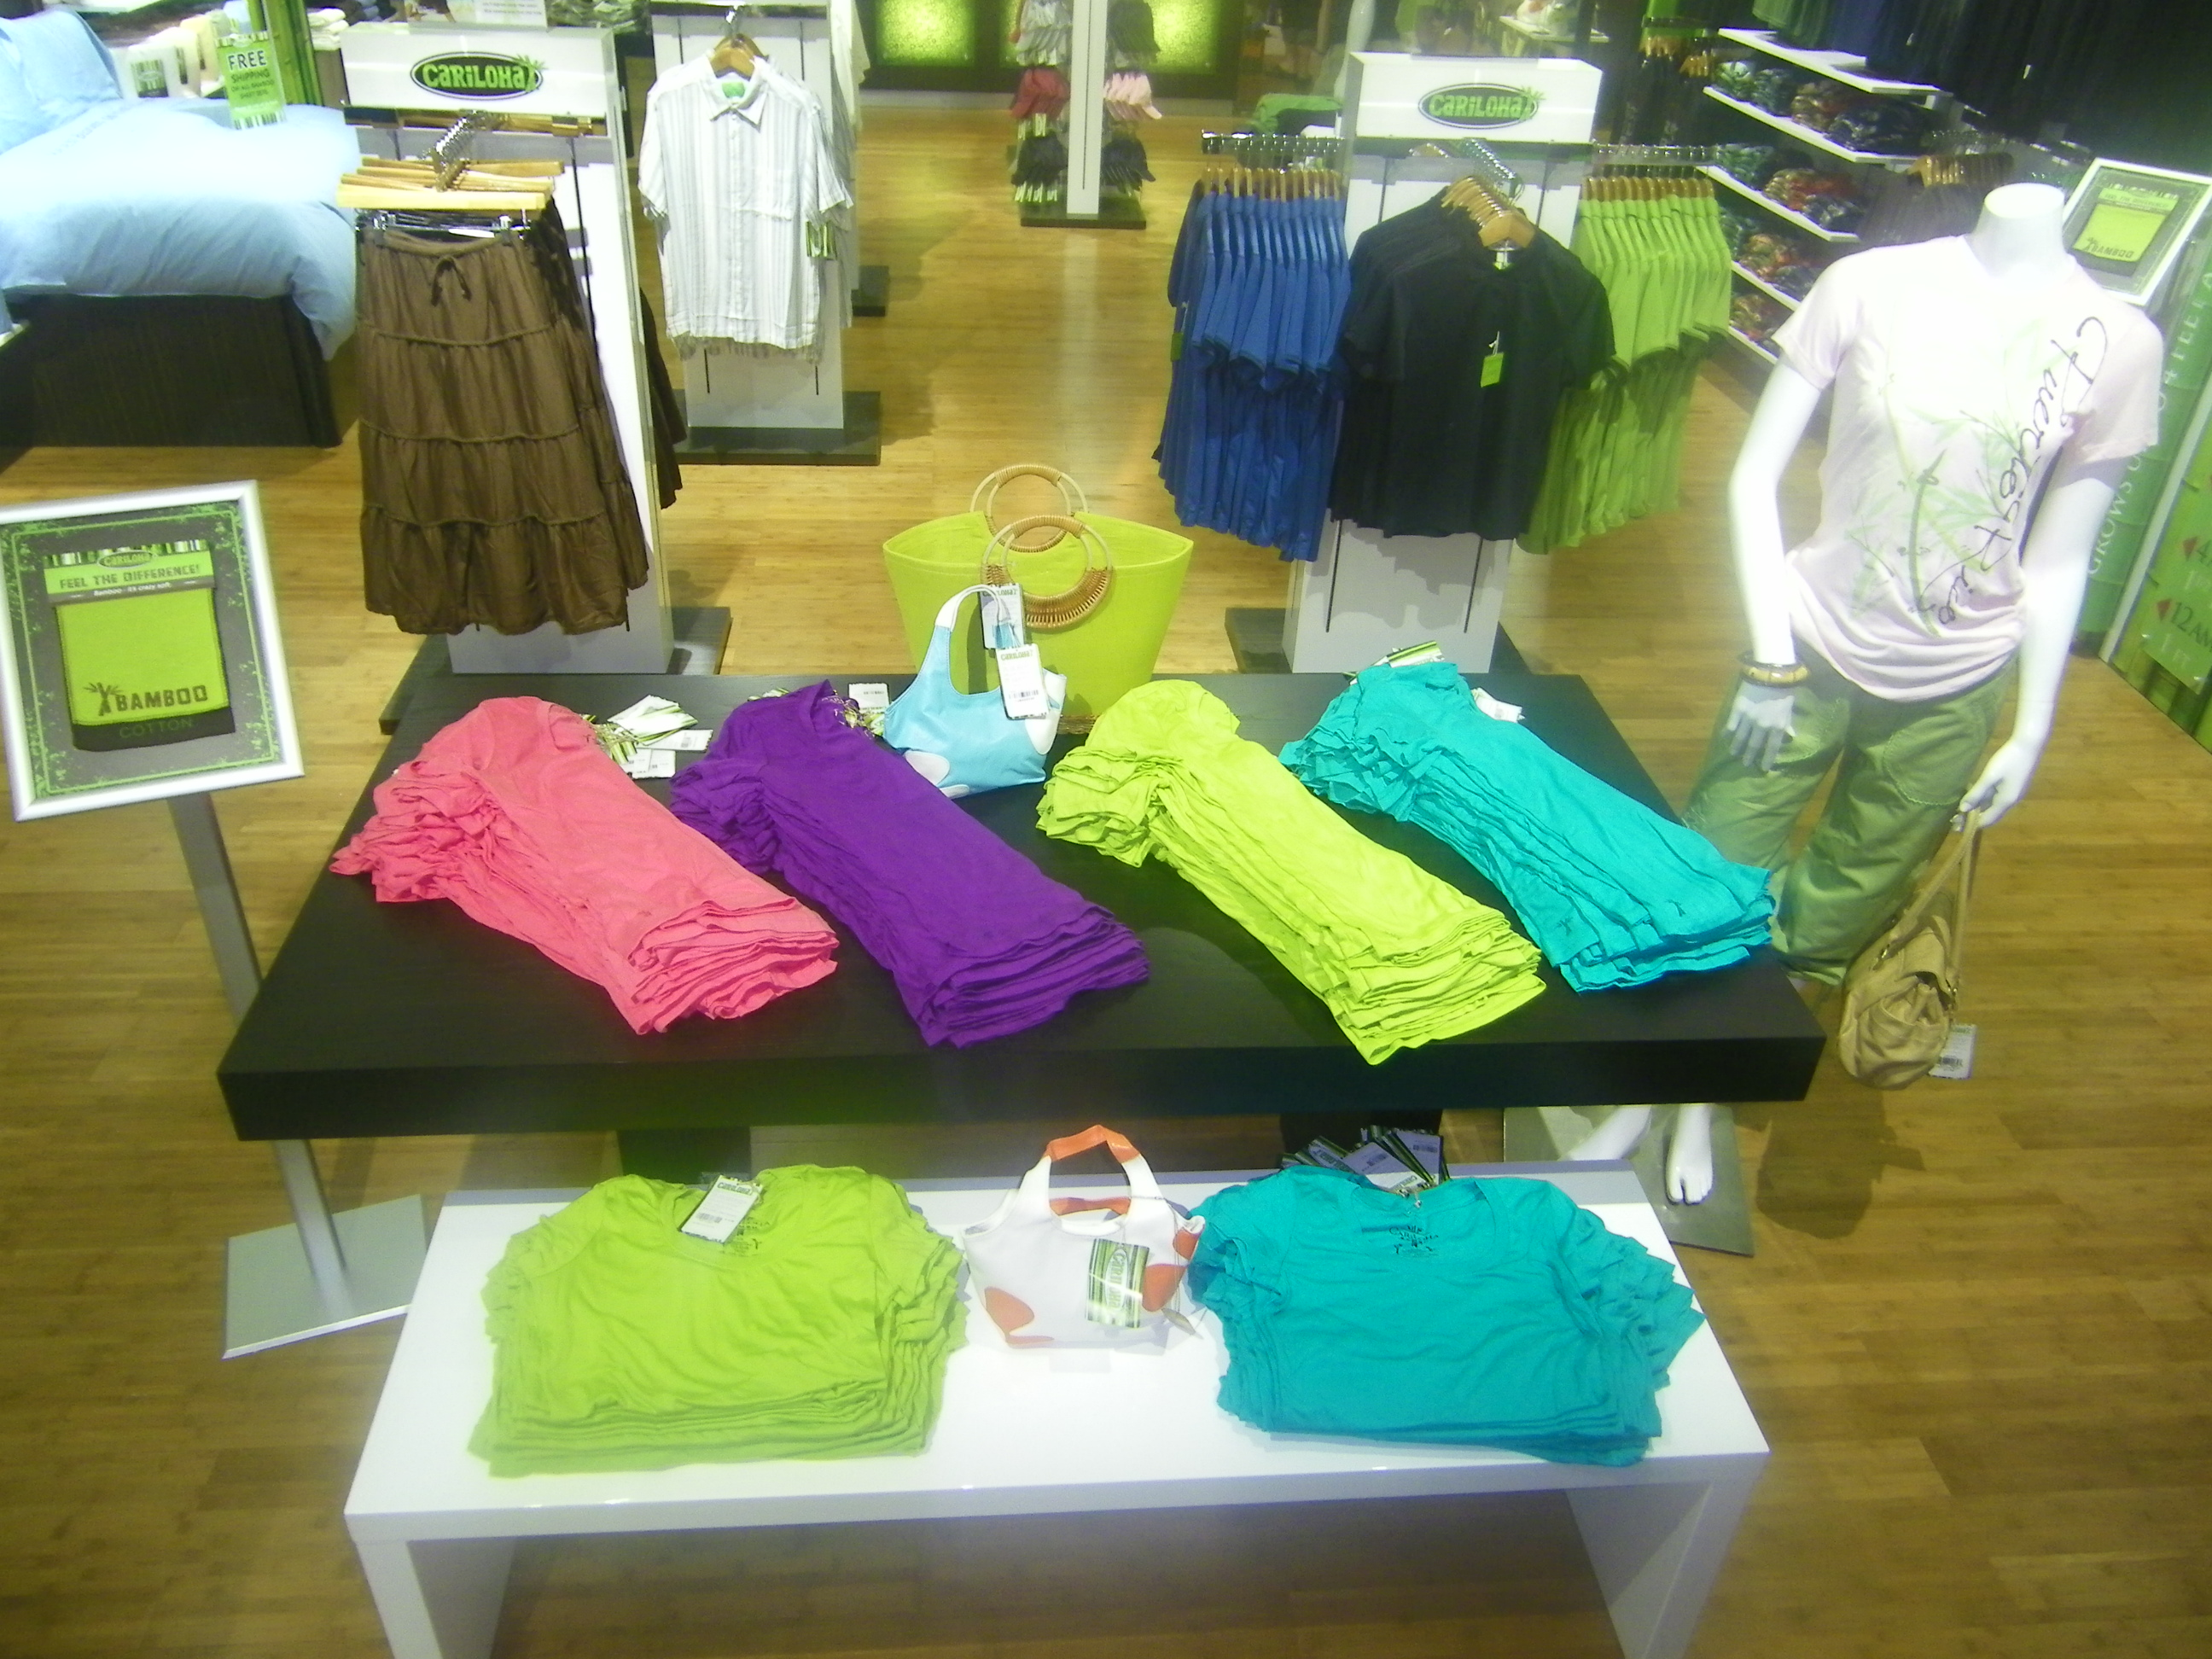 Puerto rico clothing stores online Cheap online clothing stores